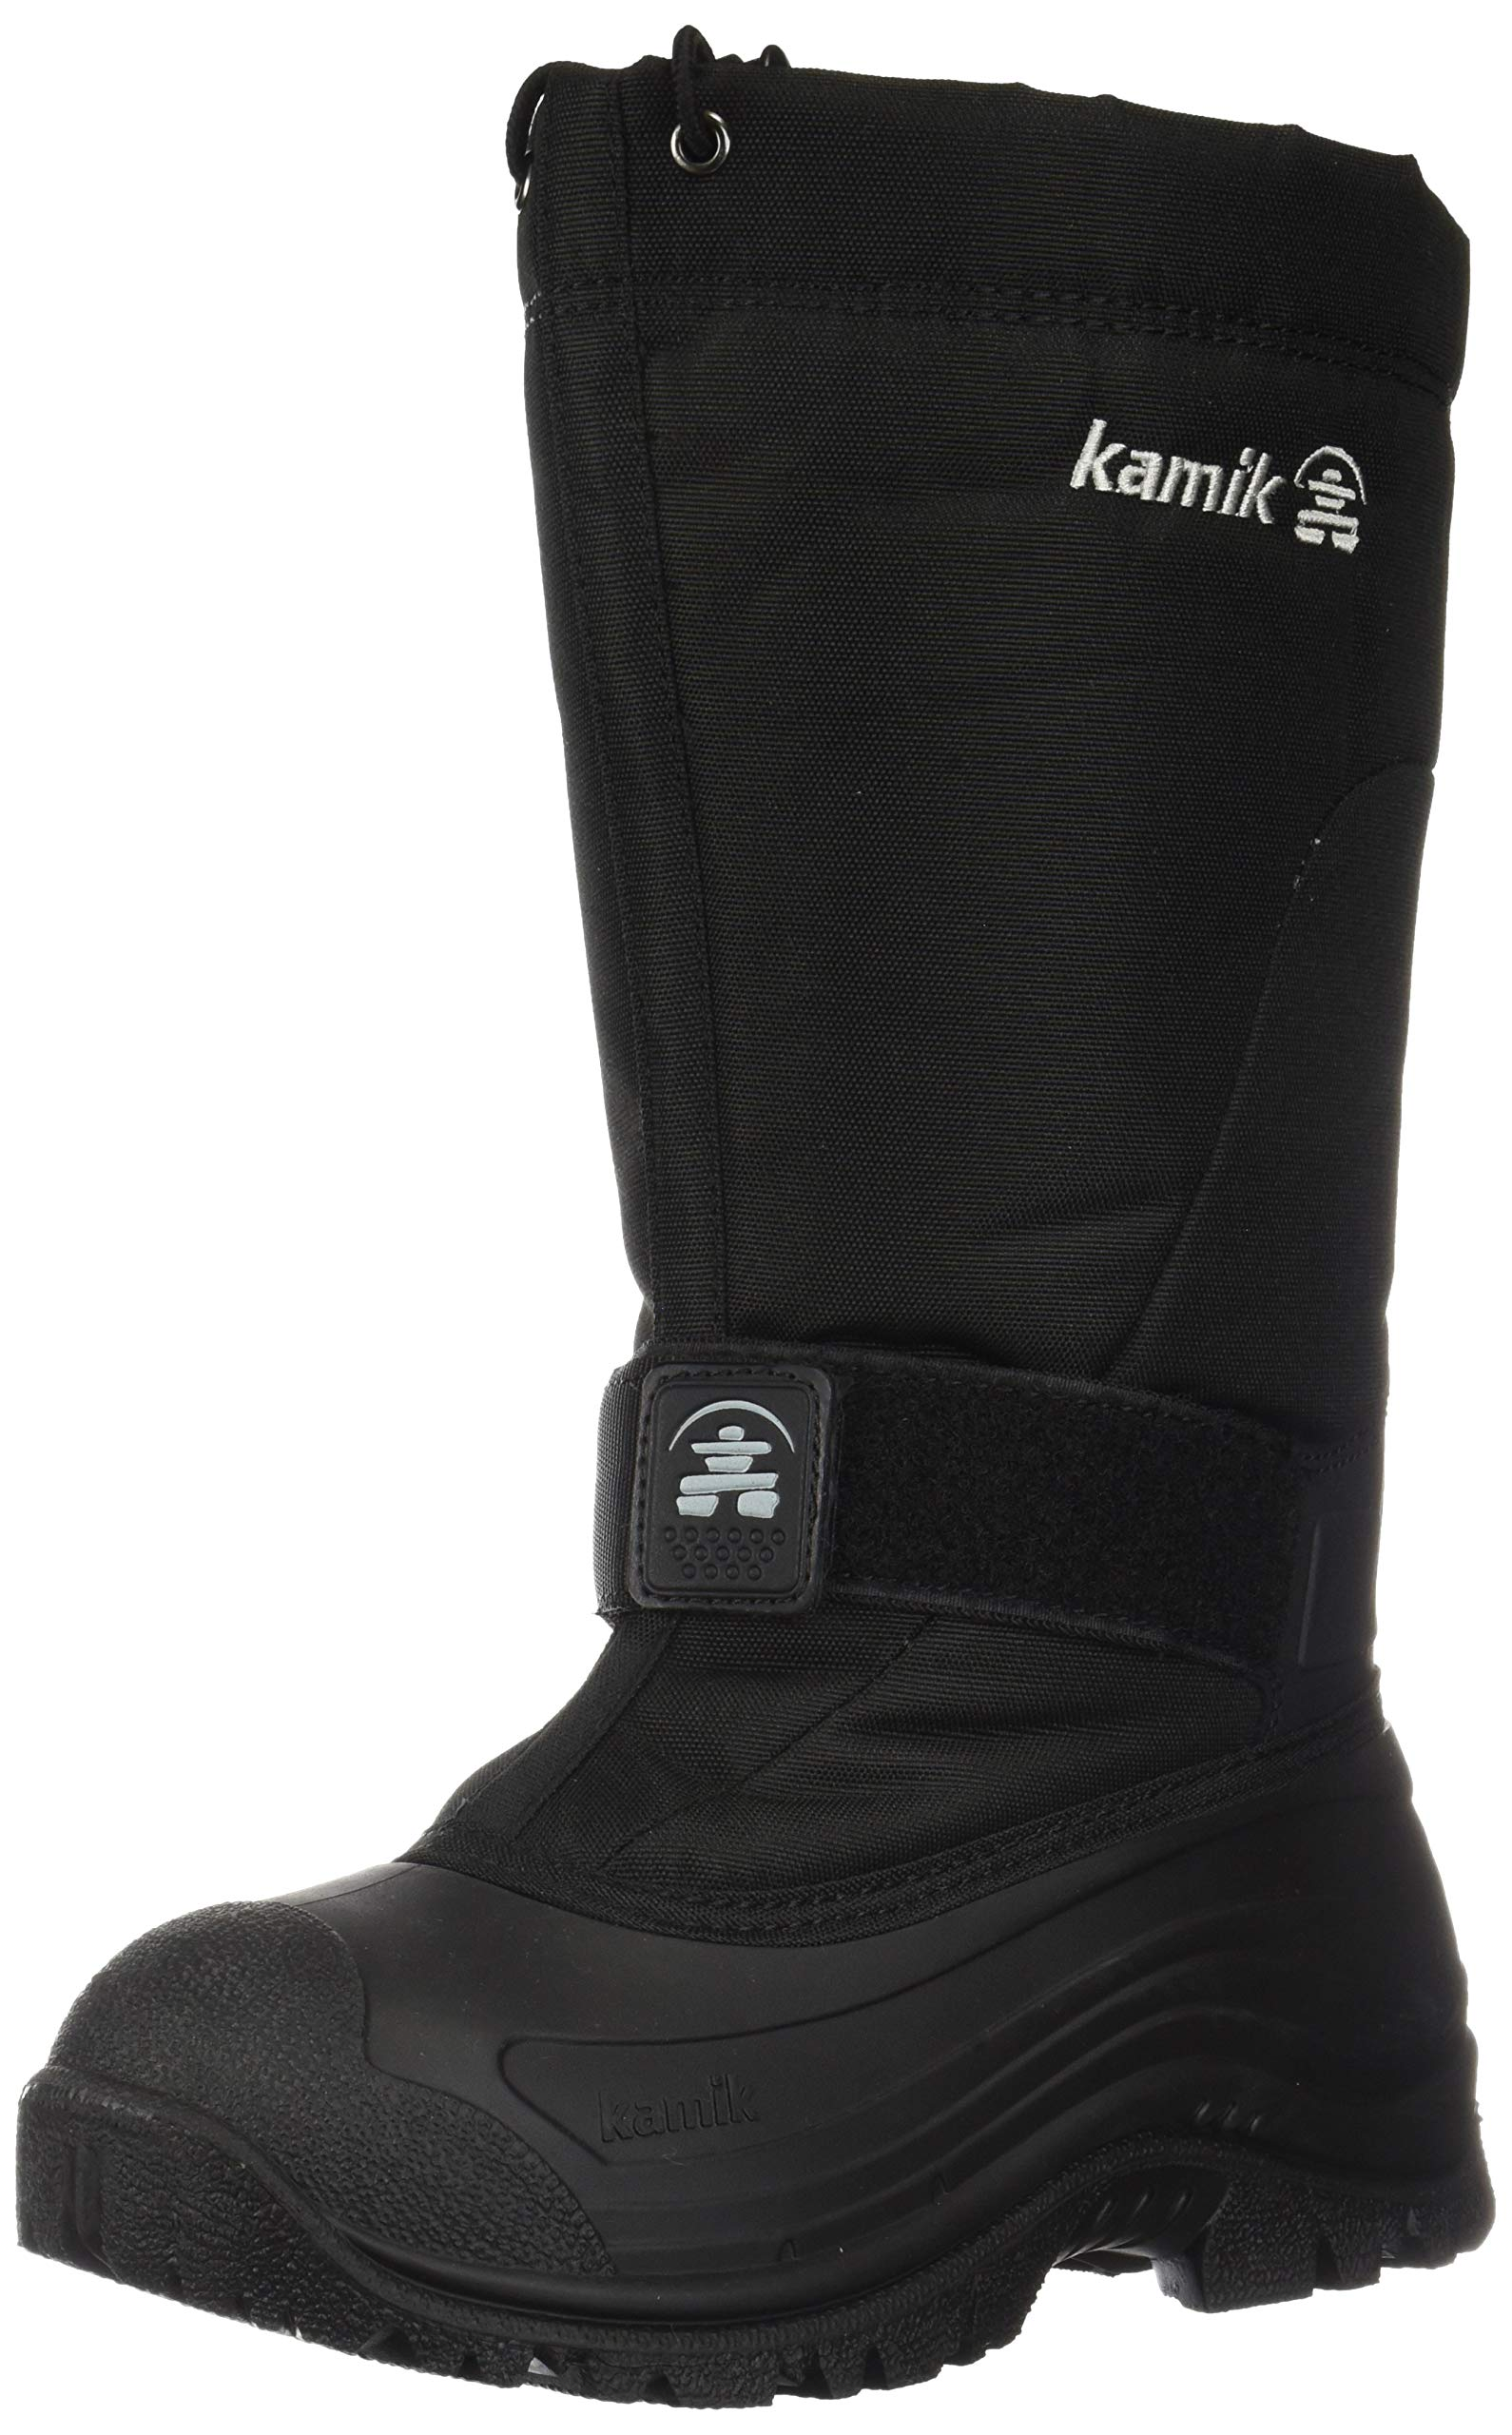 Kamik Men's Greenbay 4 Cold Weather Boot,Black,10 M US by Kamik